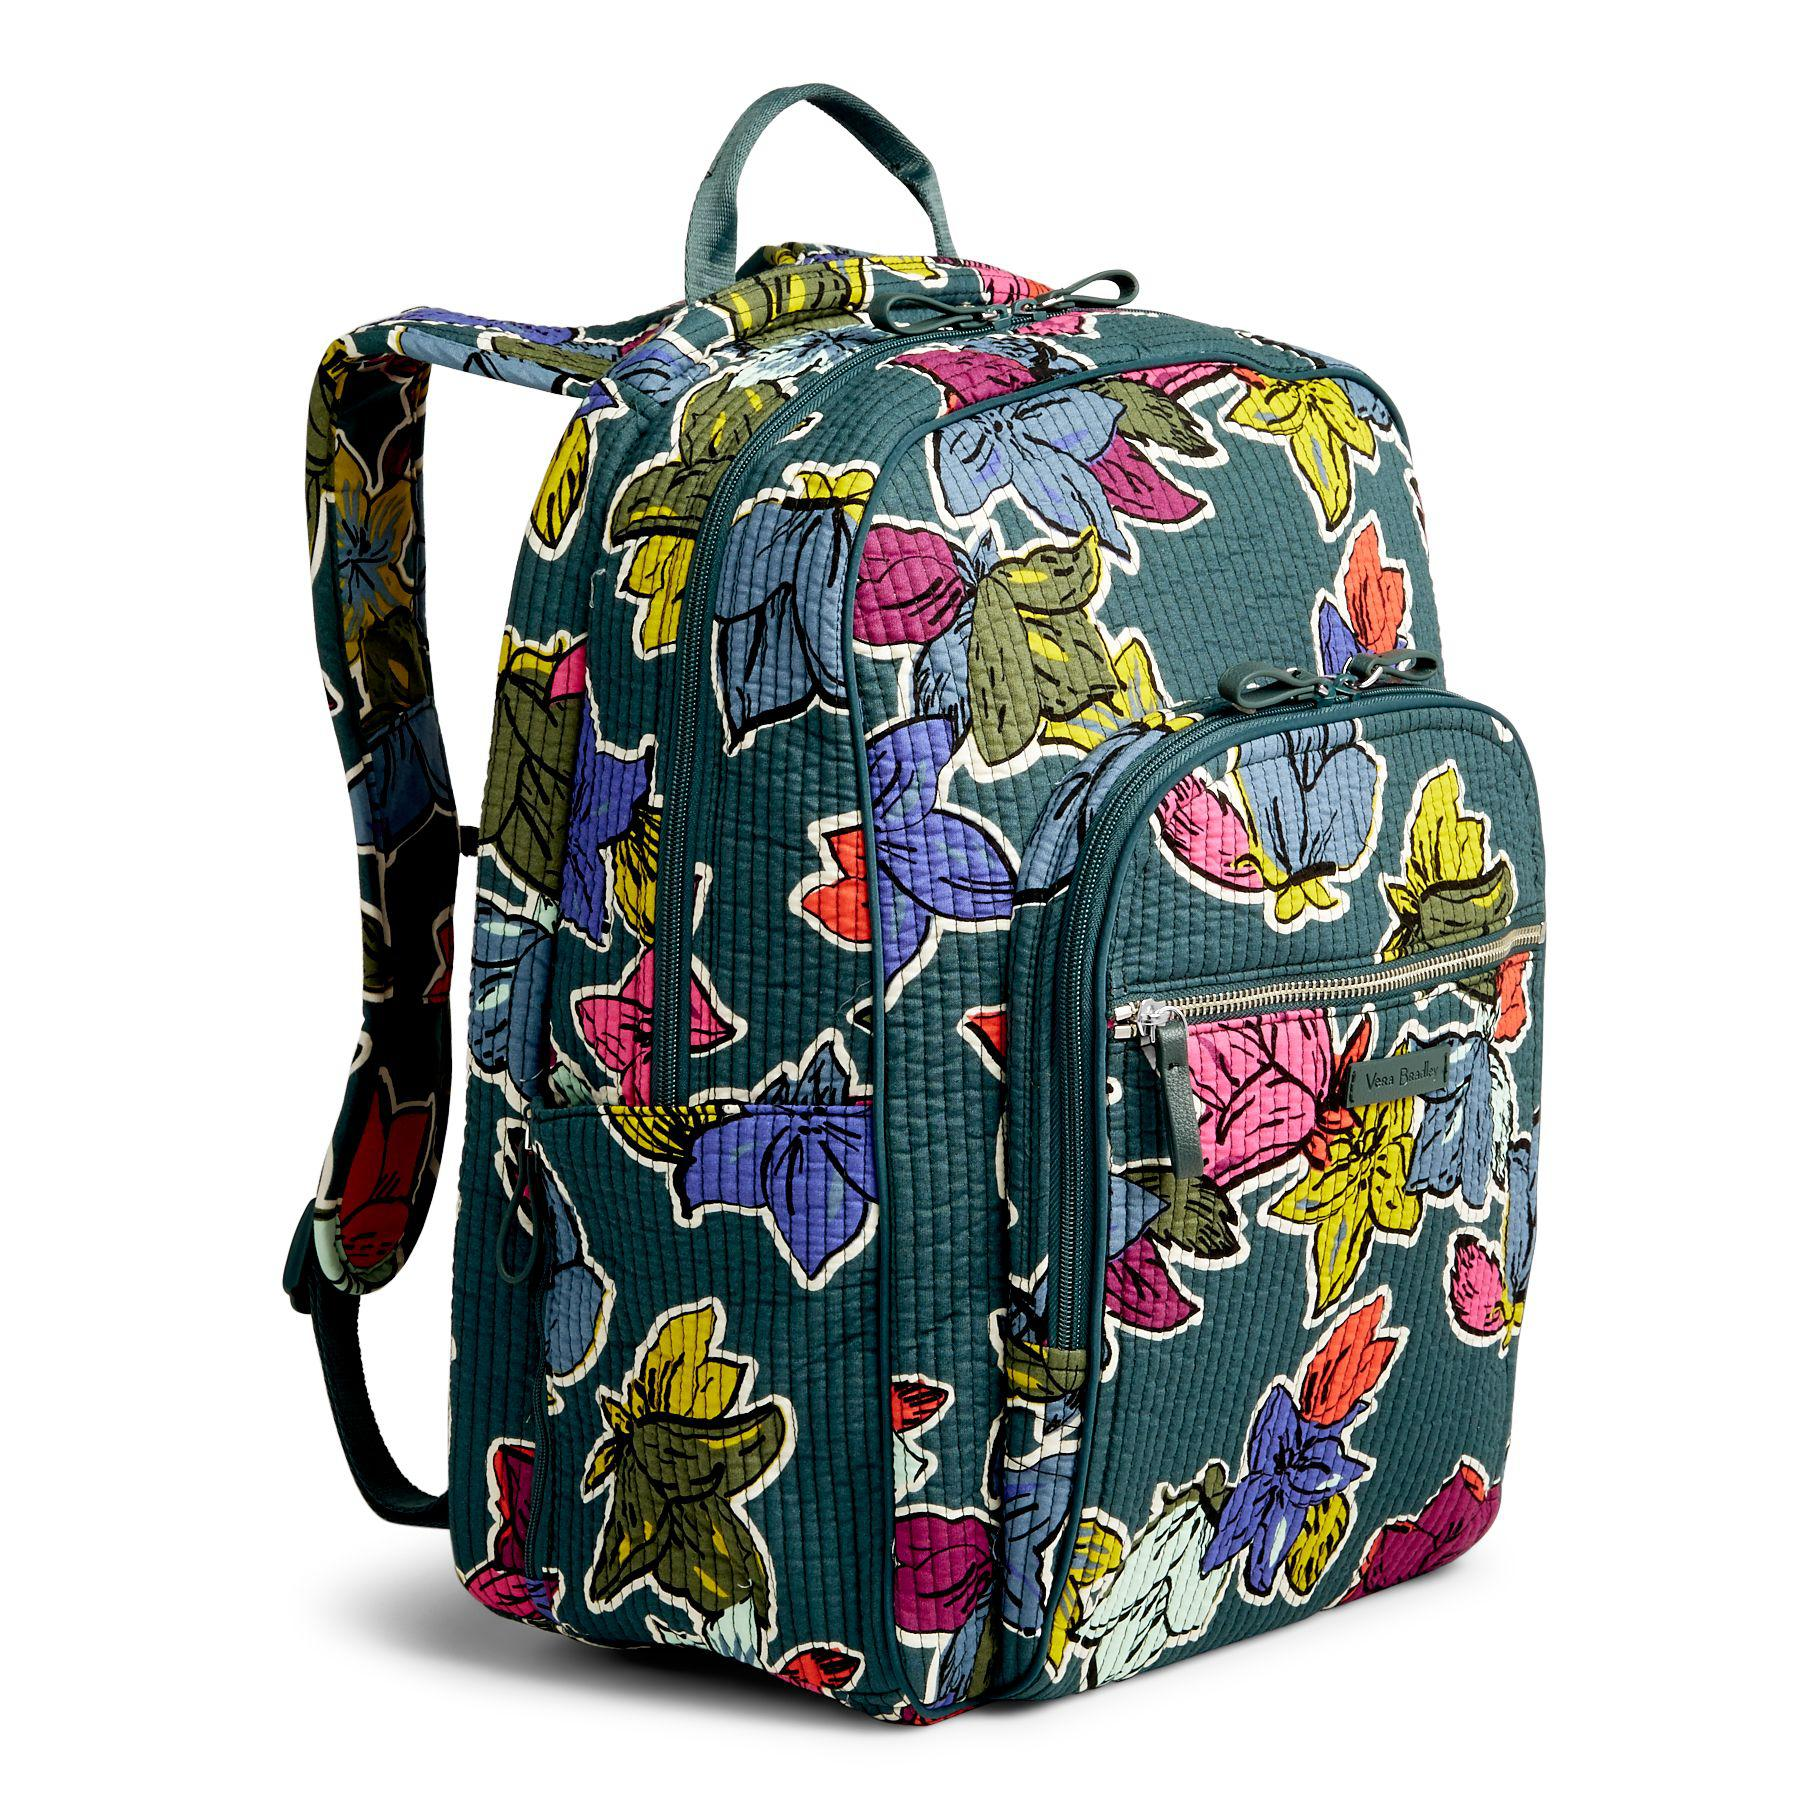 Lyst - Vera Bradley Iconic Deluxe Campus Backpack e0ece7c404ee1